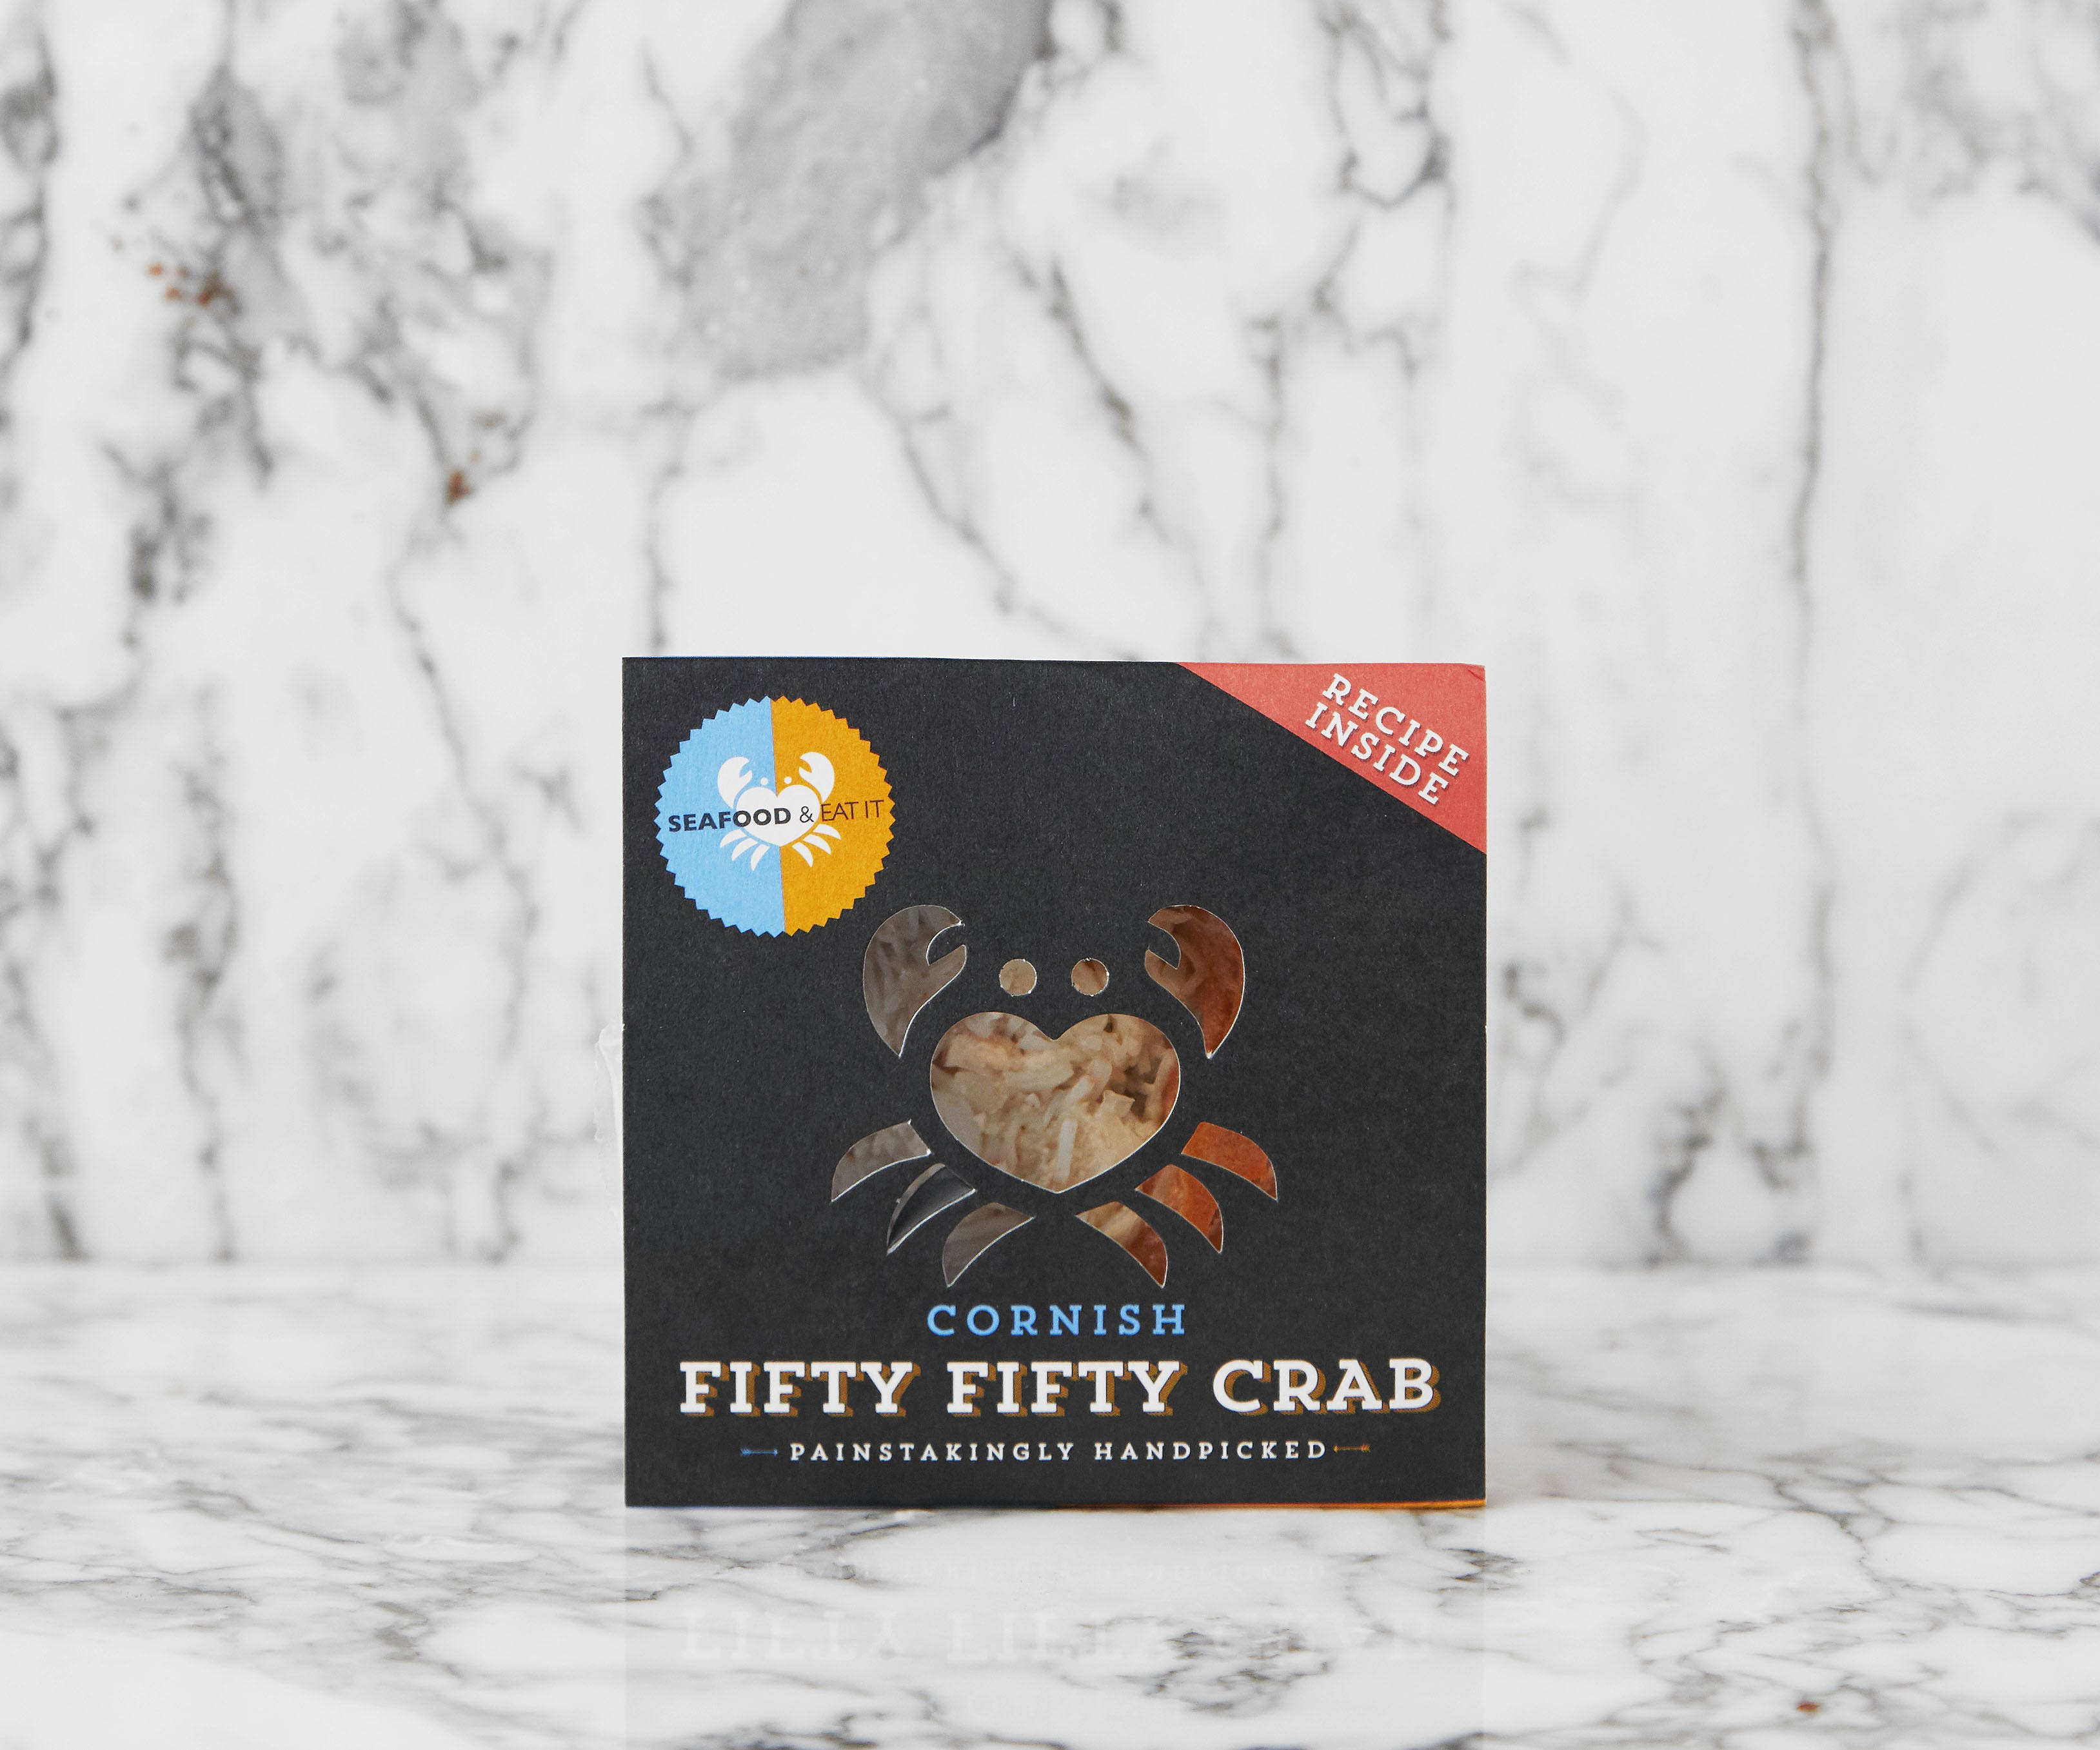 Cornish Fifty Fifty Crab